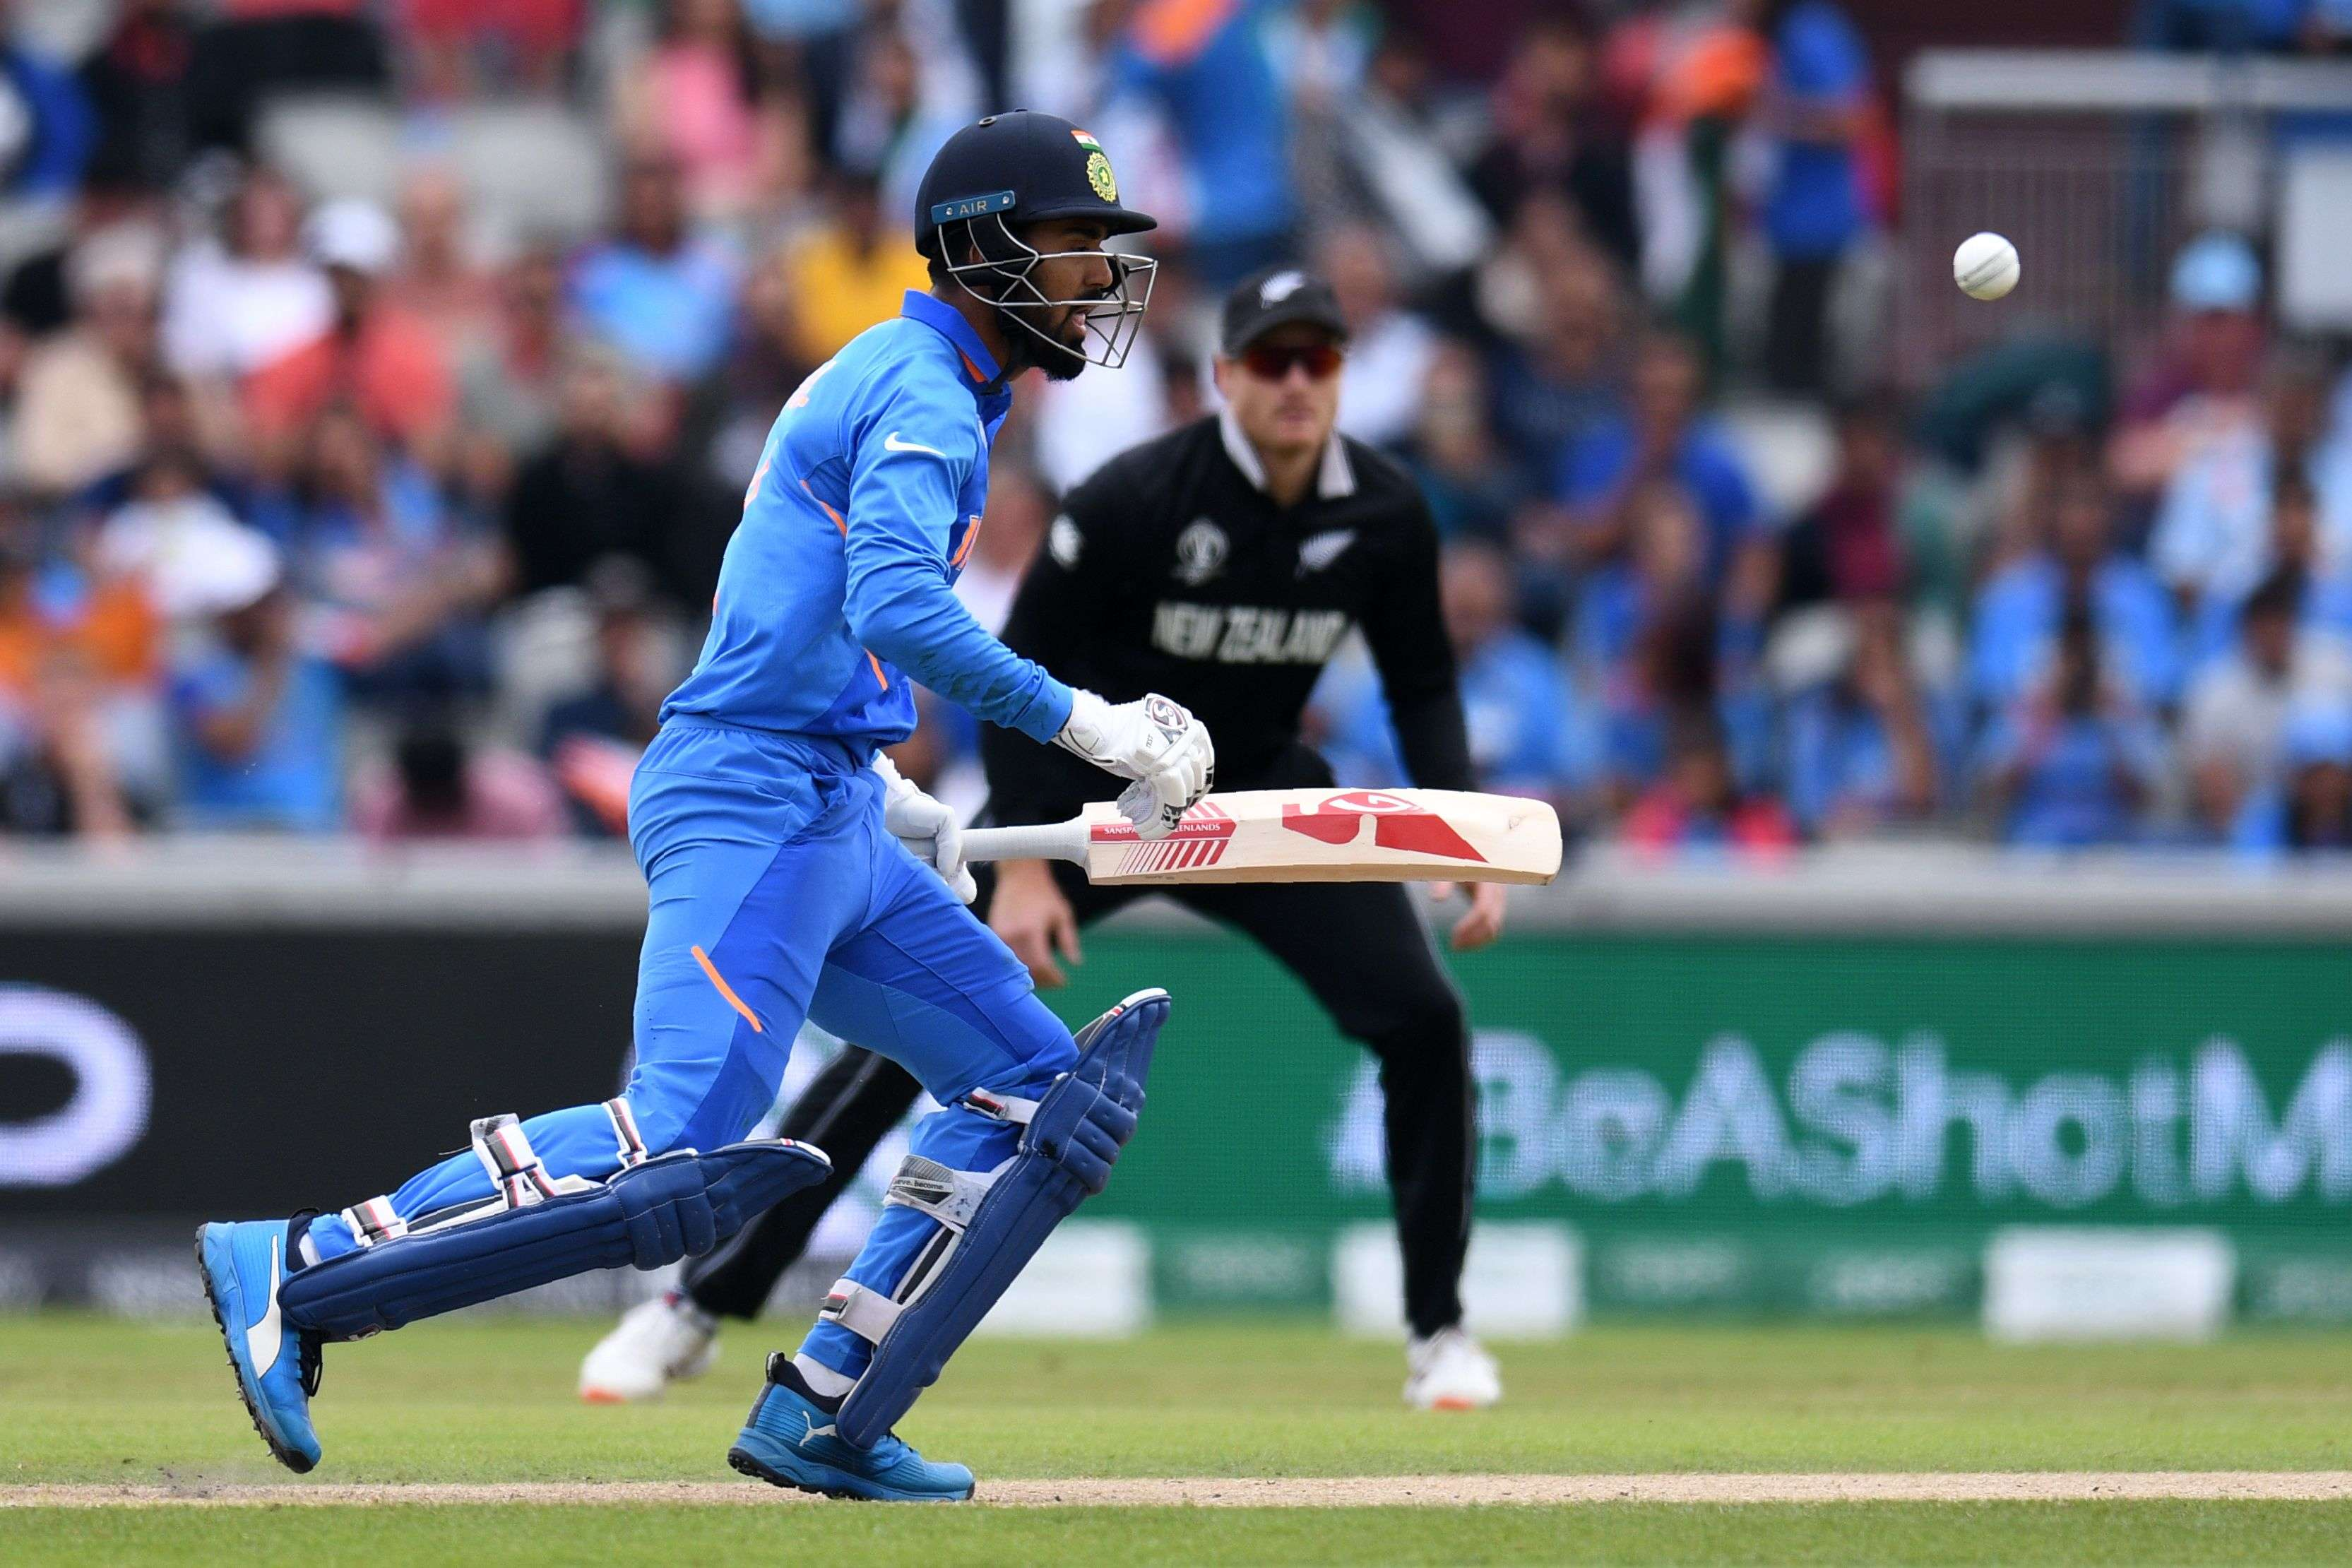 ICC World Cup 2019: India knocked out, NZ reach finals